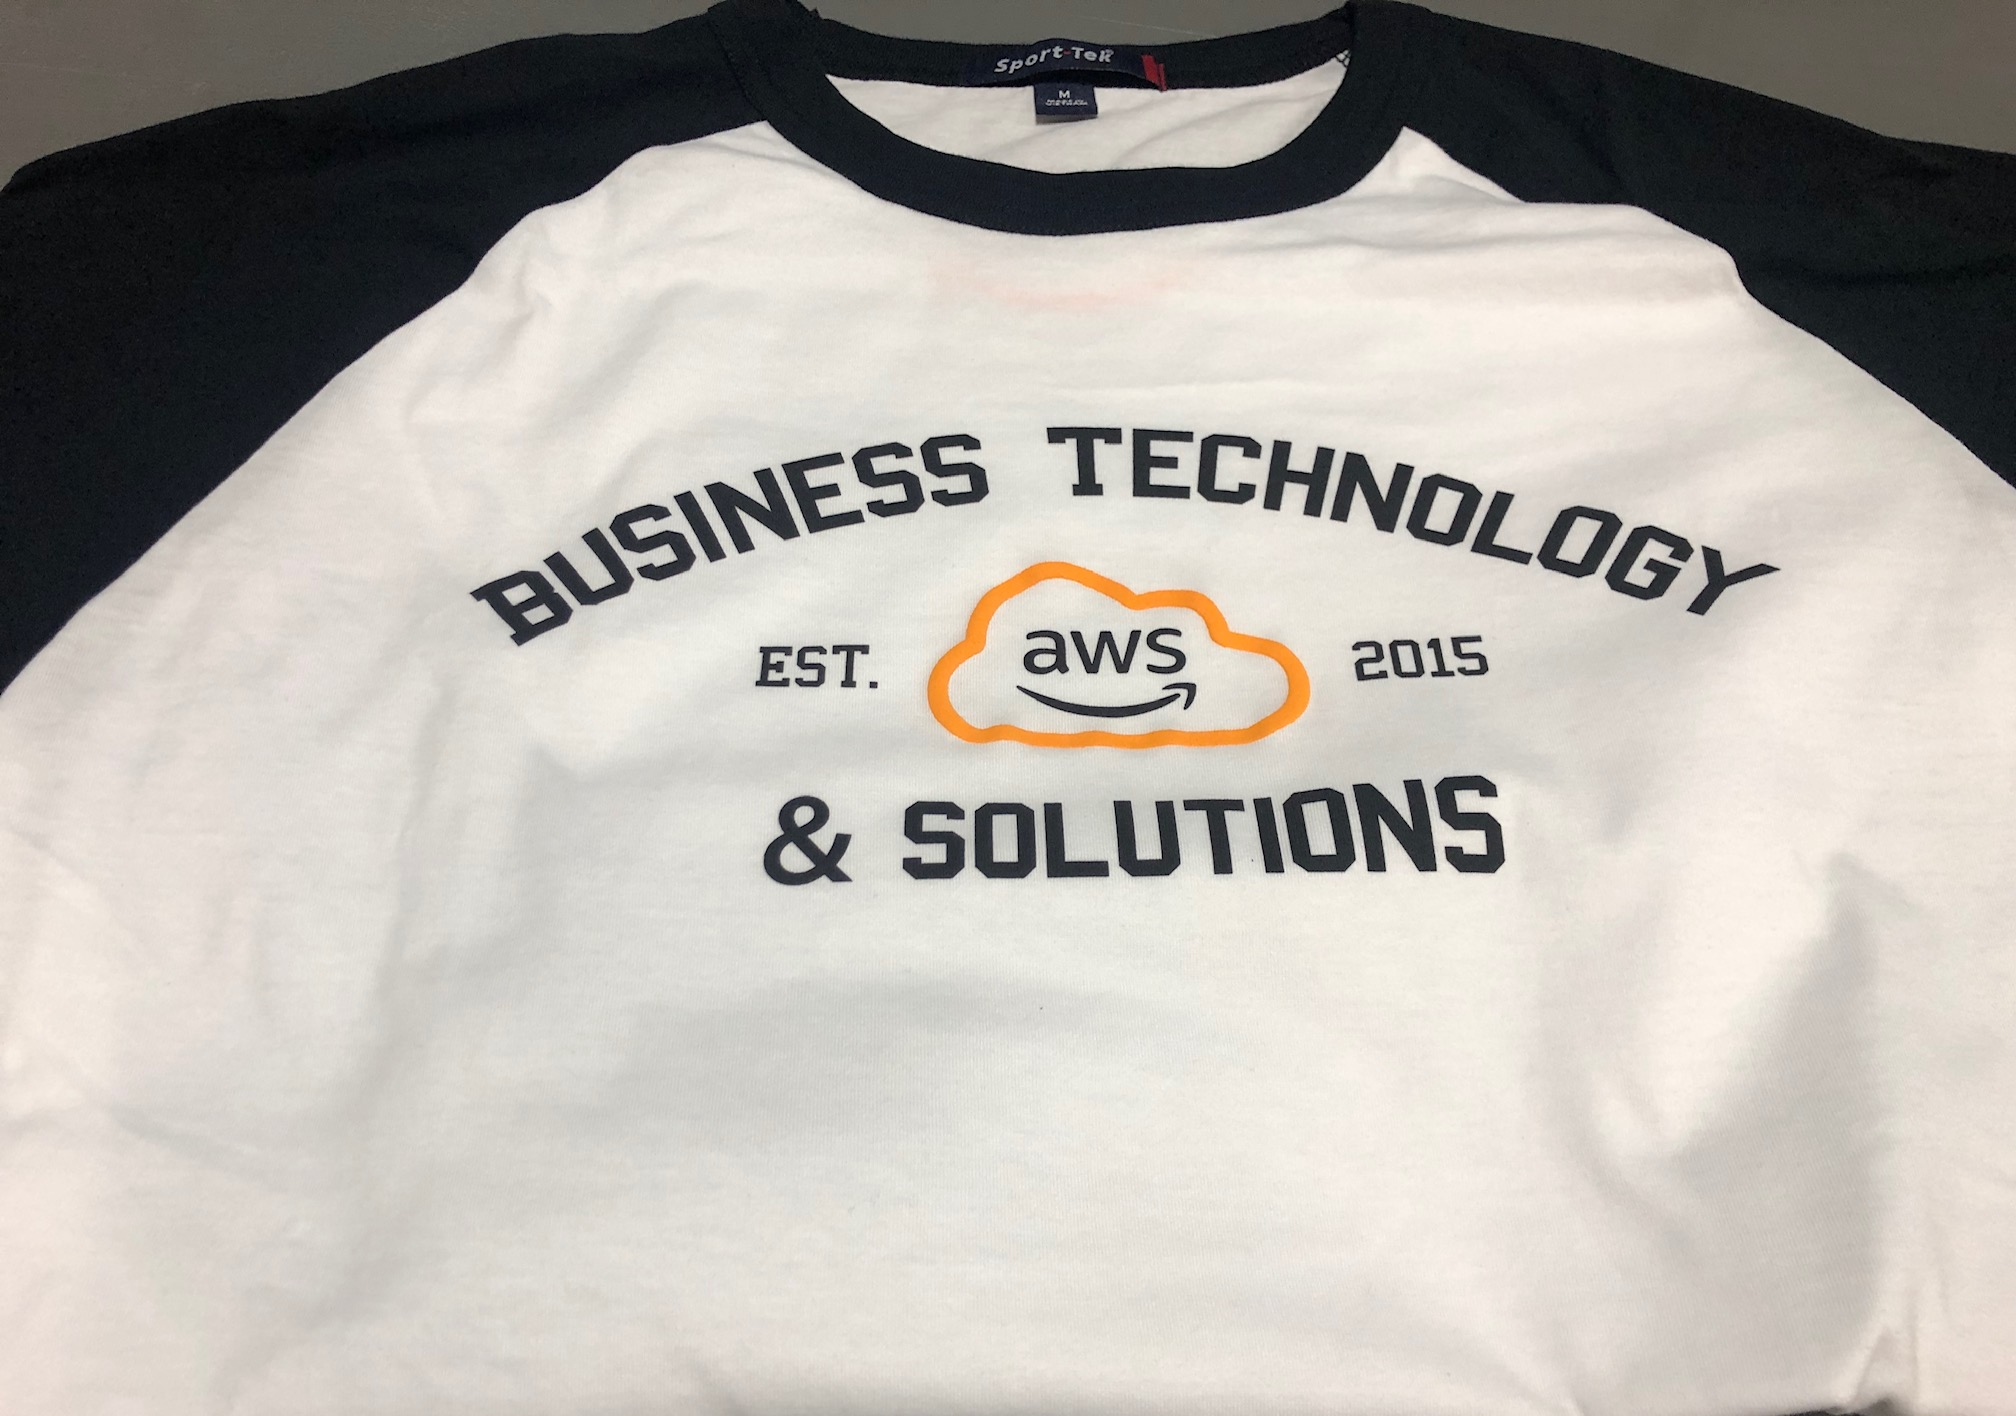 logounltd_laser_etching_embroidery_screen_printing_apparel_uniform_custom_tshirts_kirkland_bellevue_seattle_redmond_woodinville_branded_merchandise_promotional_products_logo_unltd_aws_amazon (4).jpg